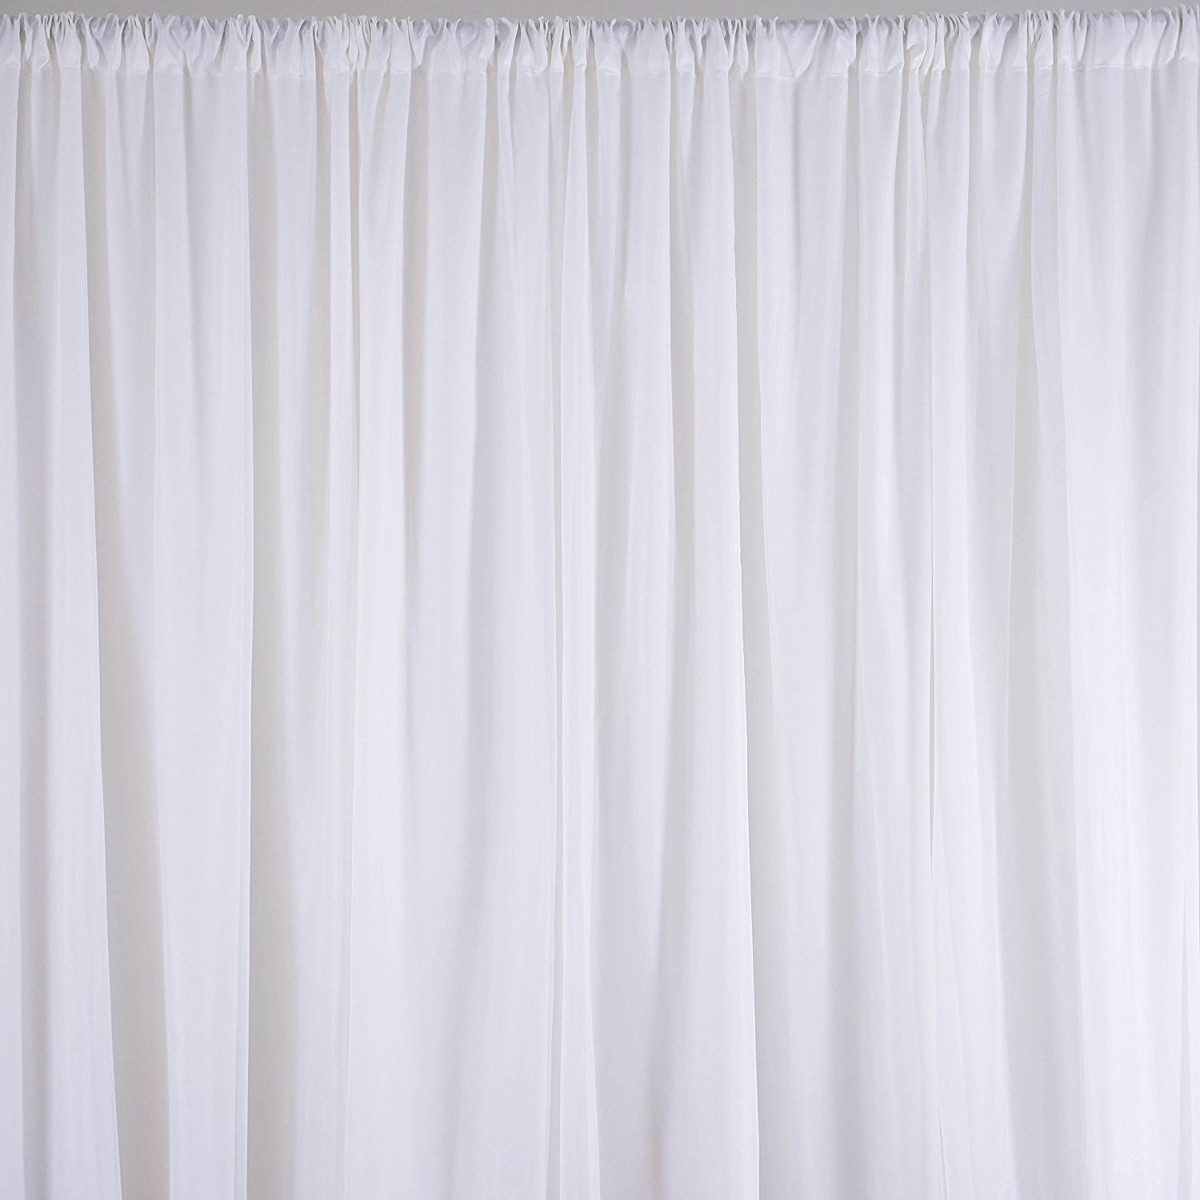 Hanging White Sheer Silk Drapes Panels Curtains 2.4x1.5M Photo Backdrop  Wedding Party Events